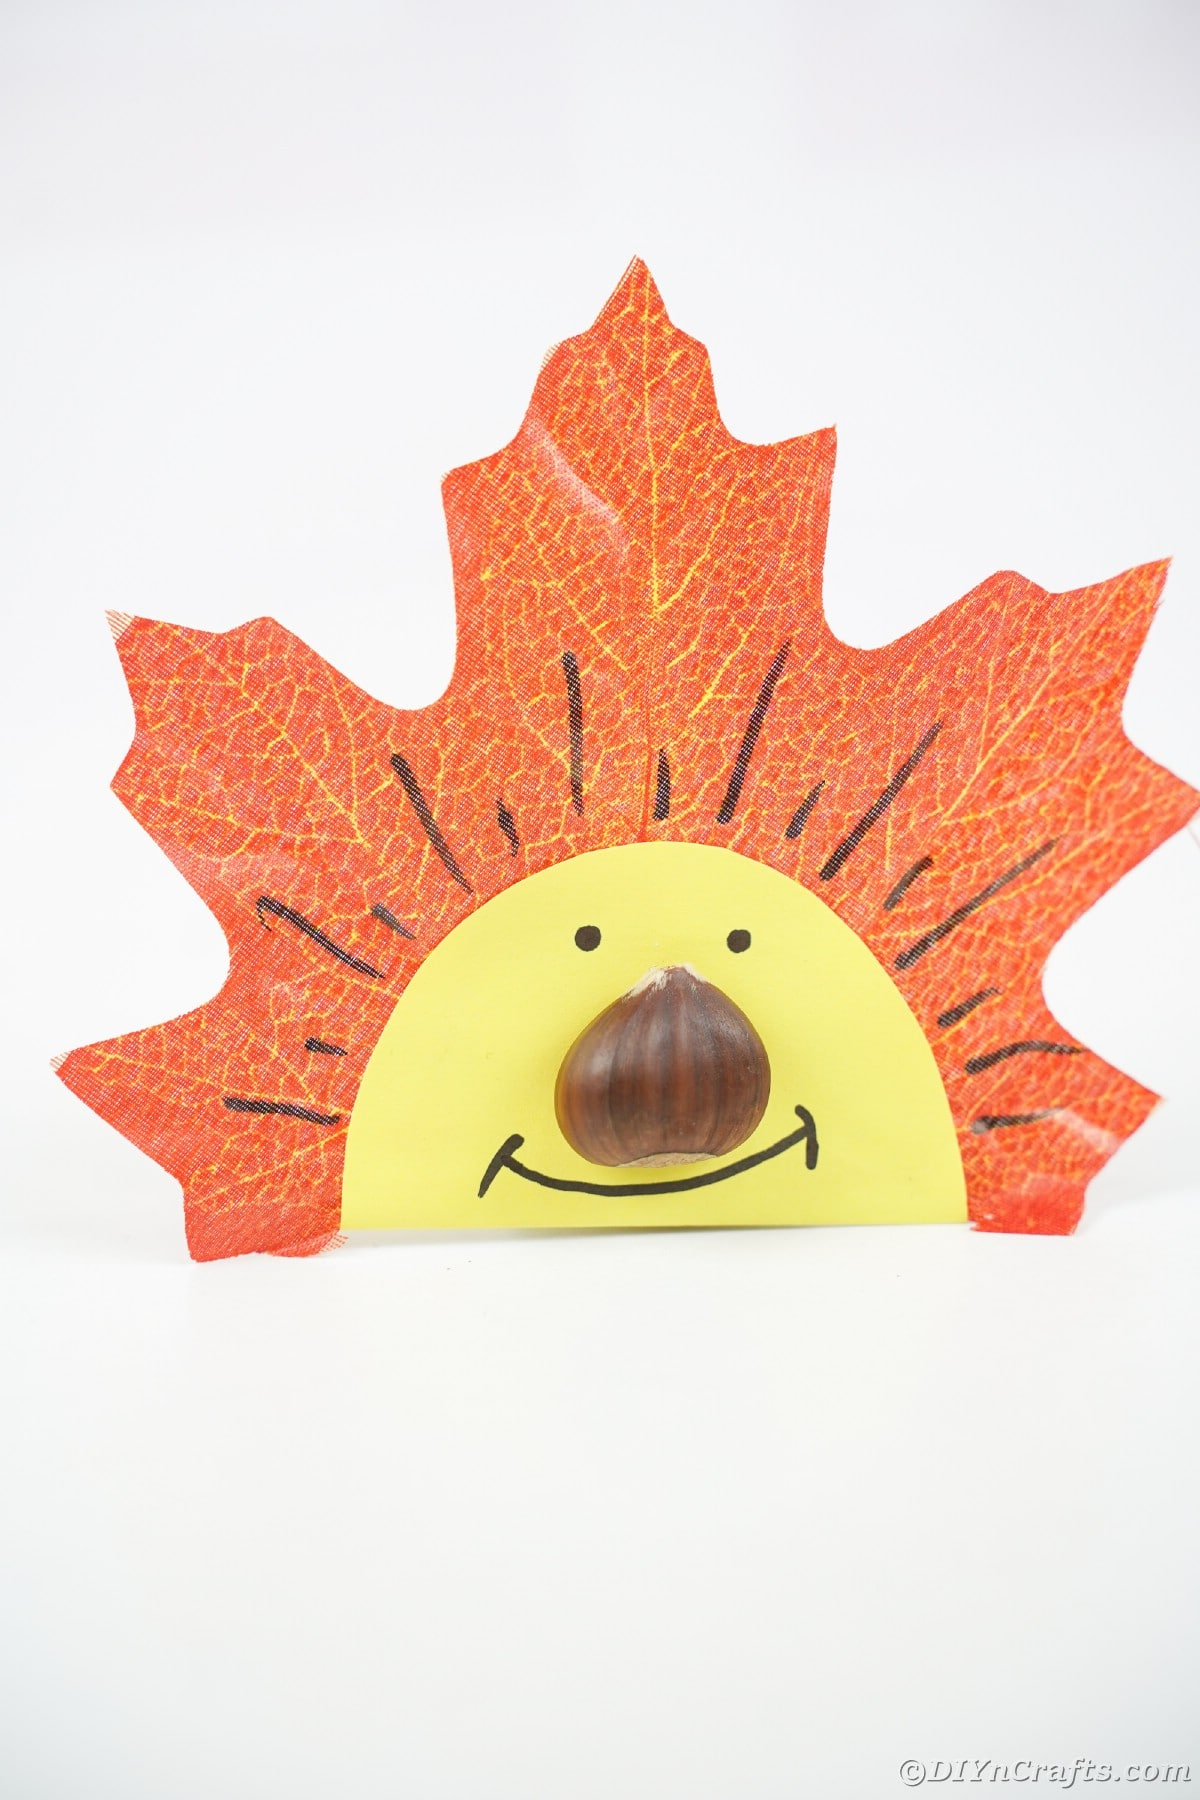 Fake leaf face with chestnut nose on white table